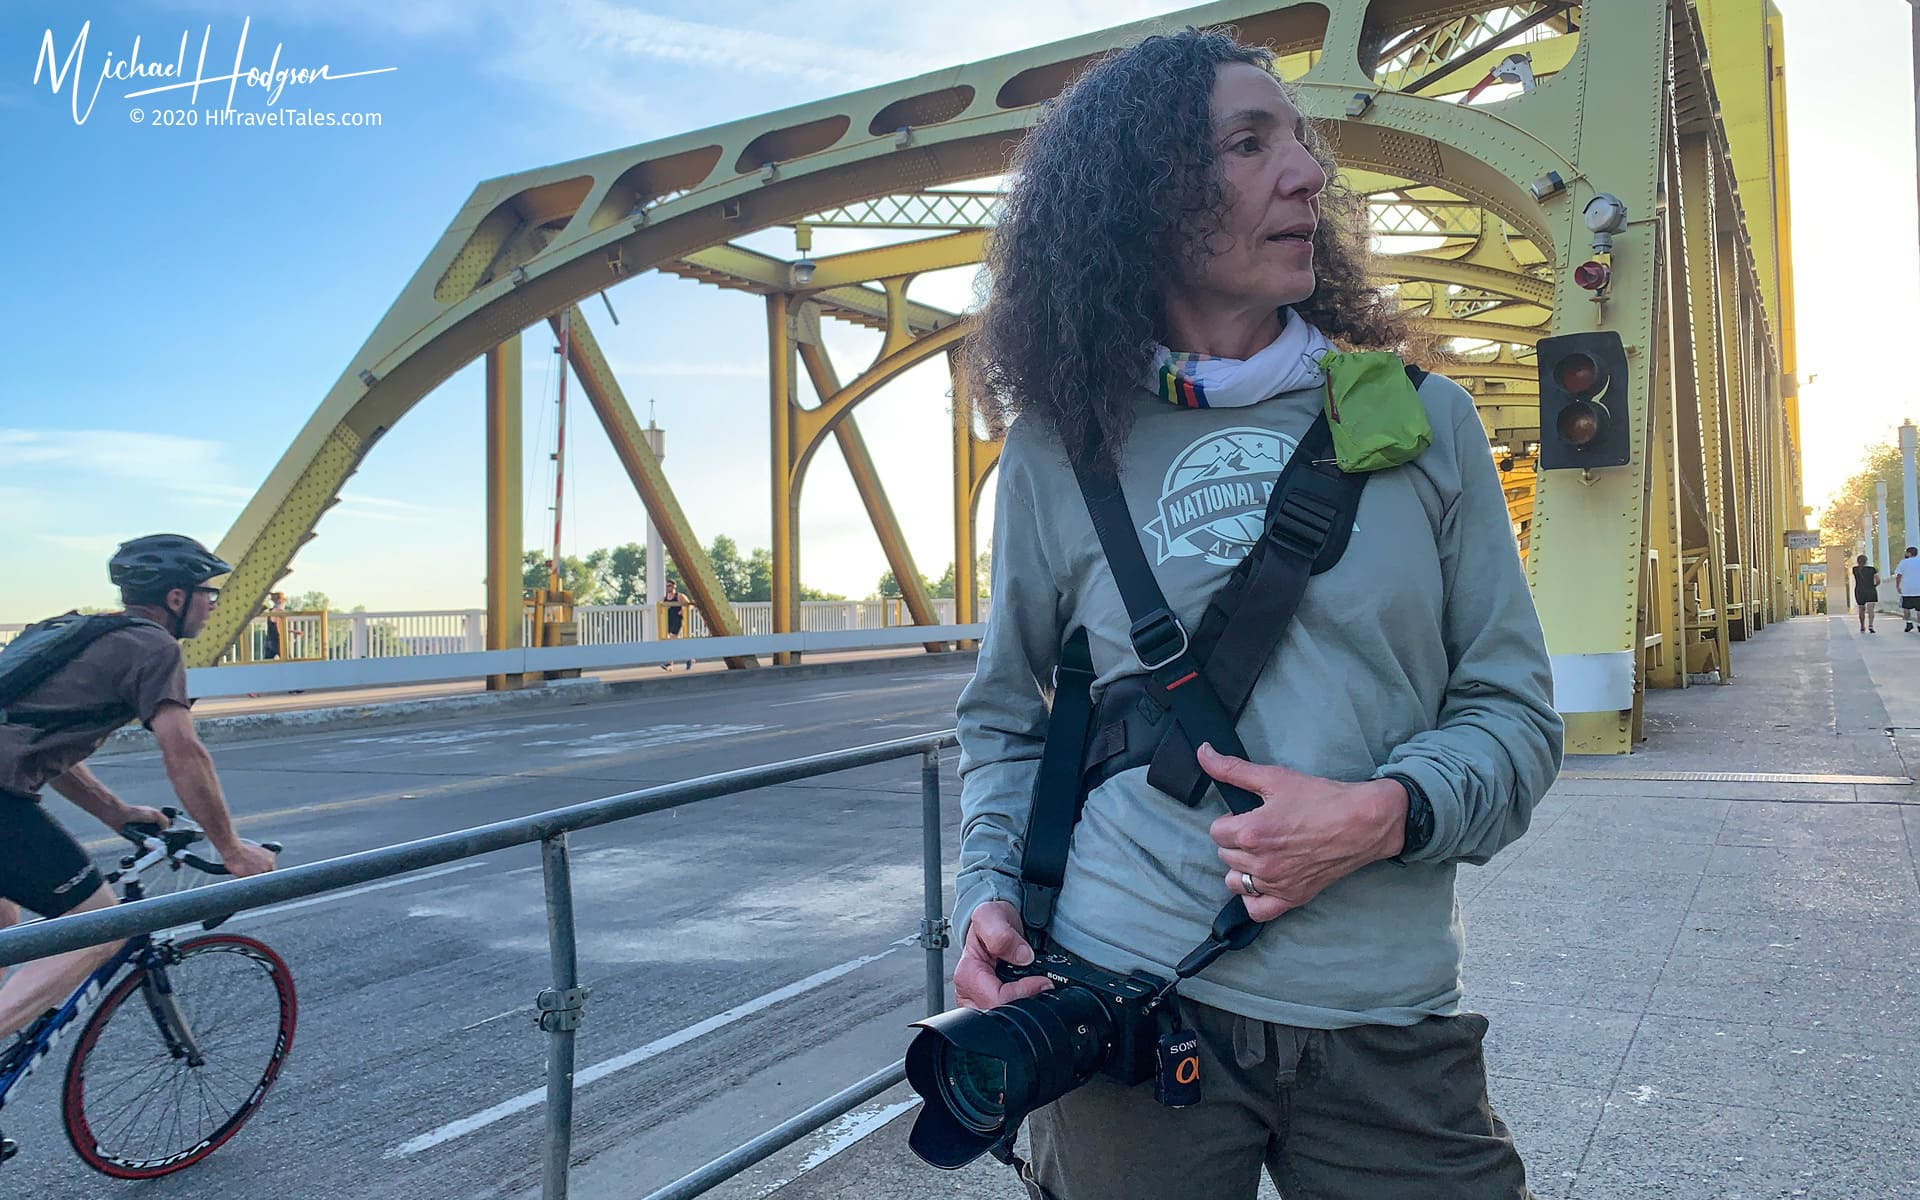 Therese Iknoian Shooting From The Hip On The Tower Bridge In Sac